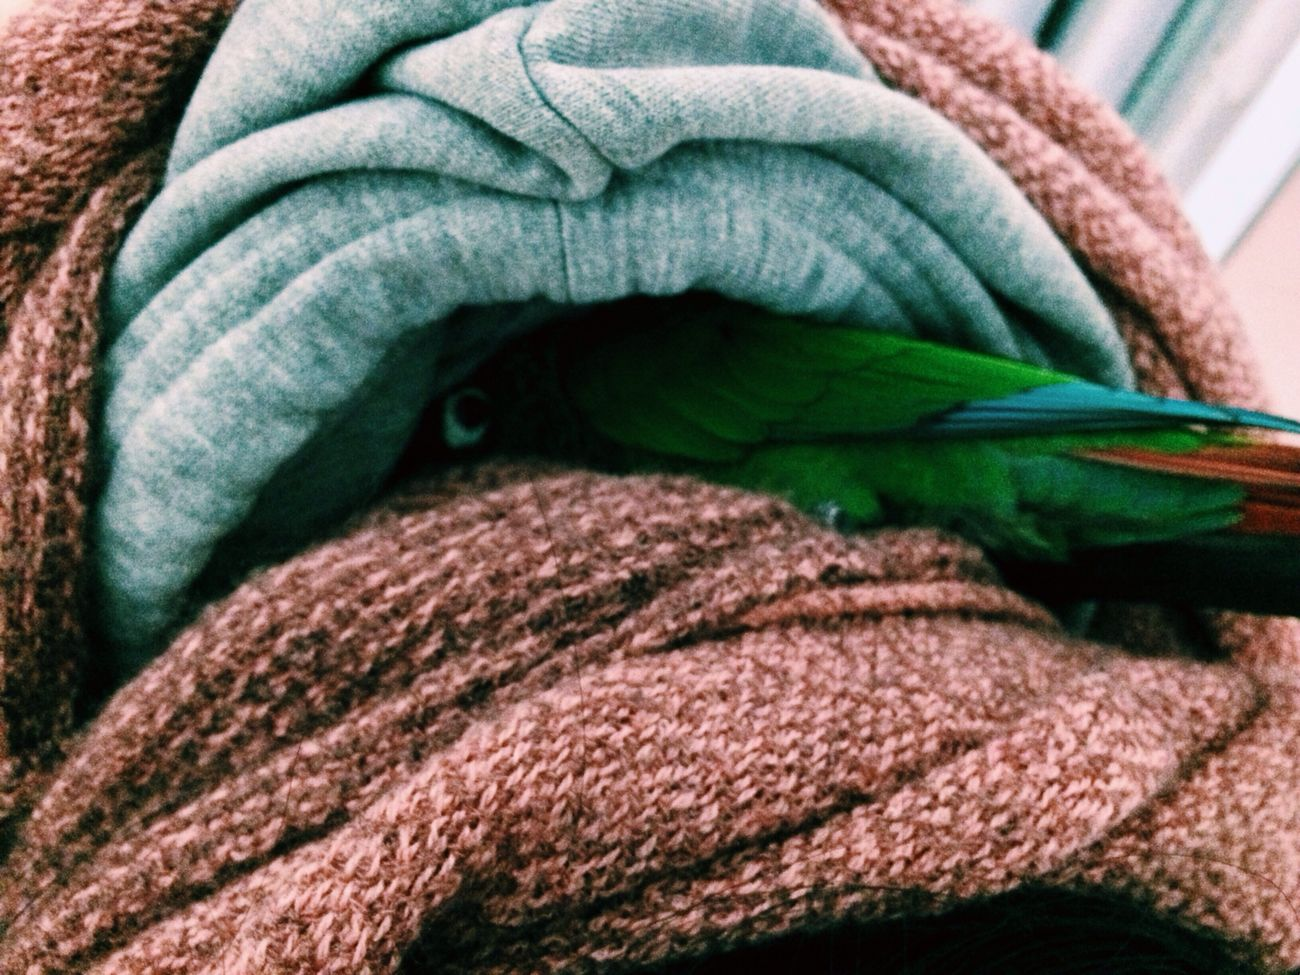 peanut hiding in my sisters sweater Animals Birds Conure Greencheekconure